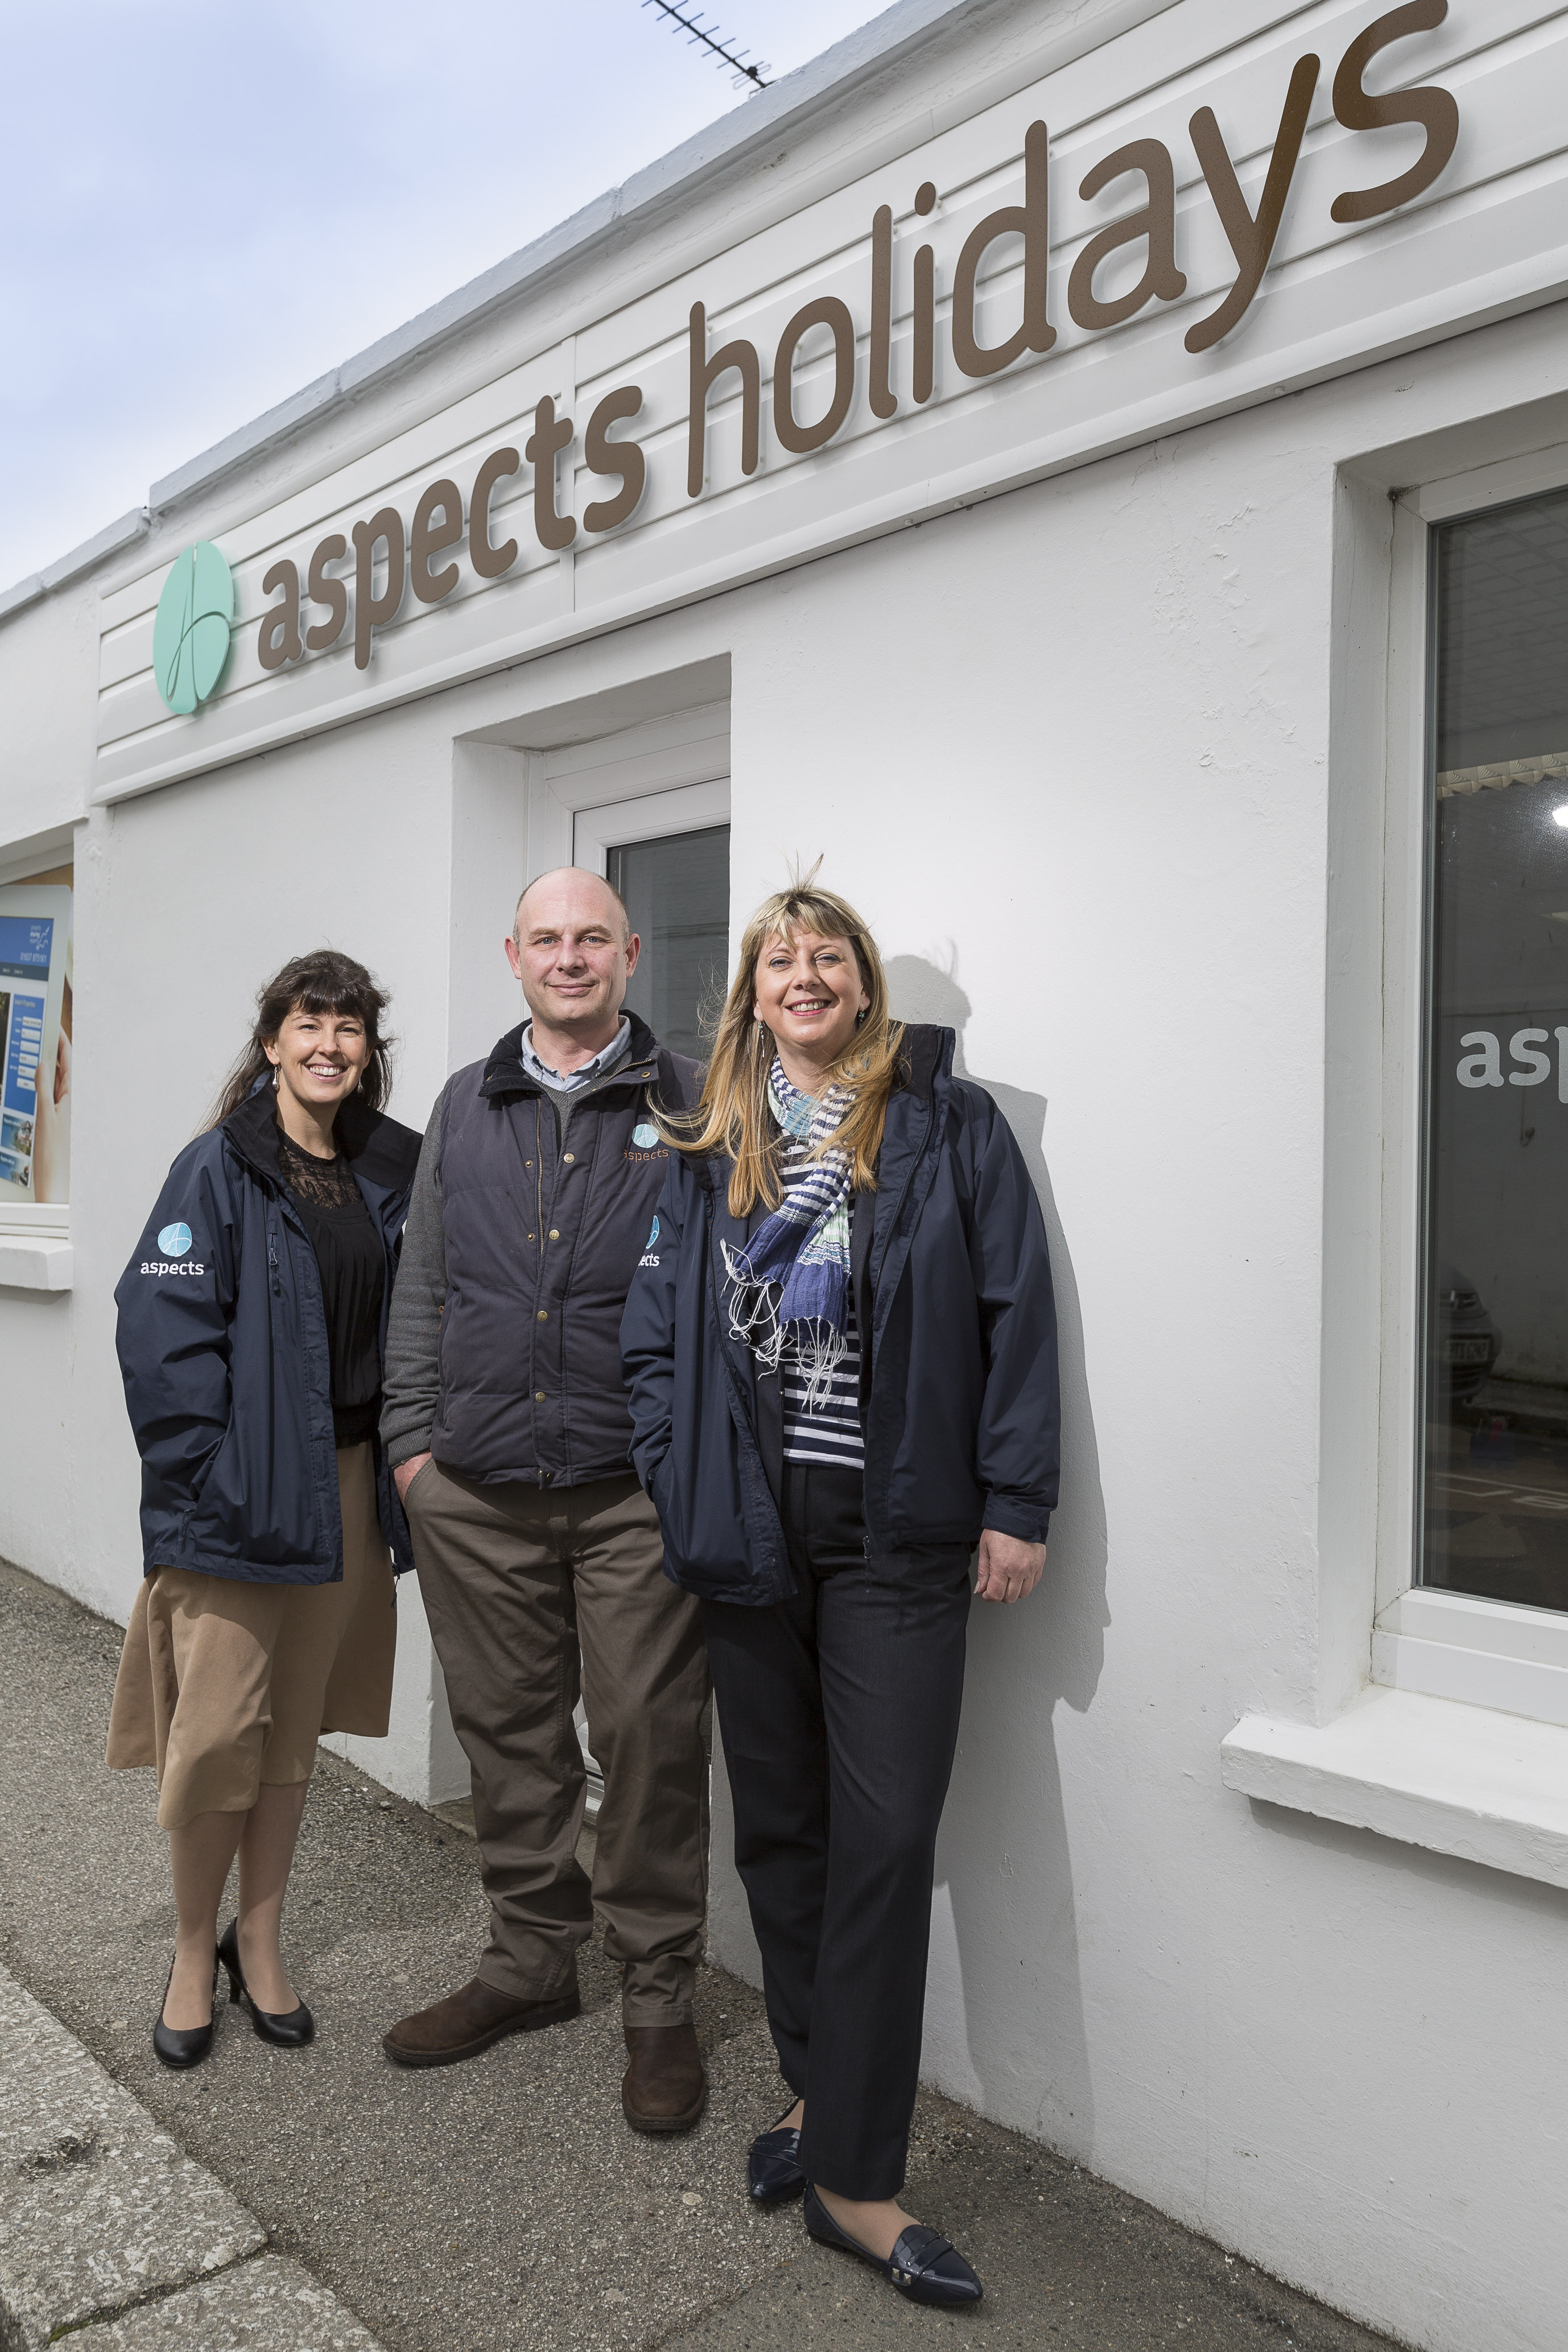 L-R: Tammy Netting, Sebastian Blakemore and Mandy Stinchcombe at the new Newquay office